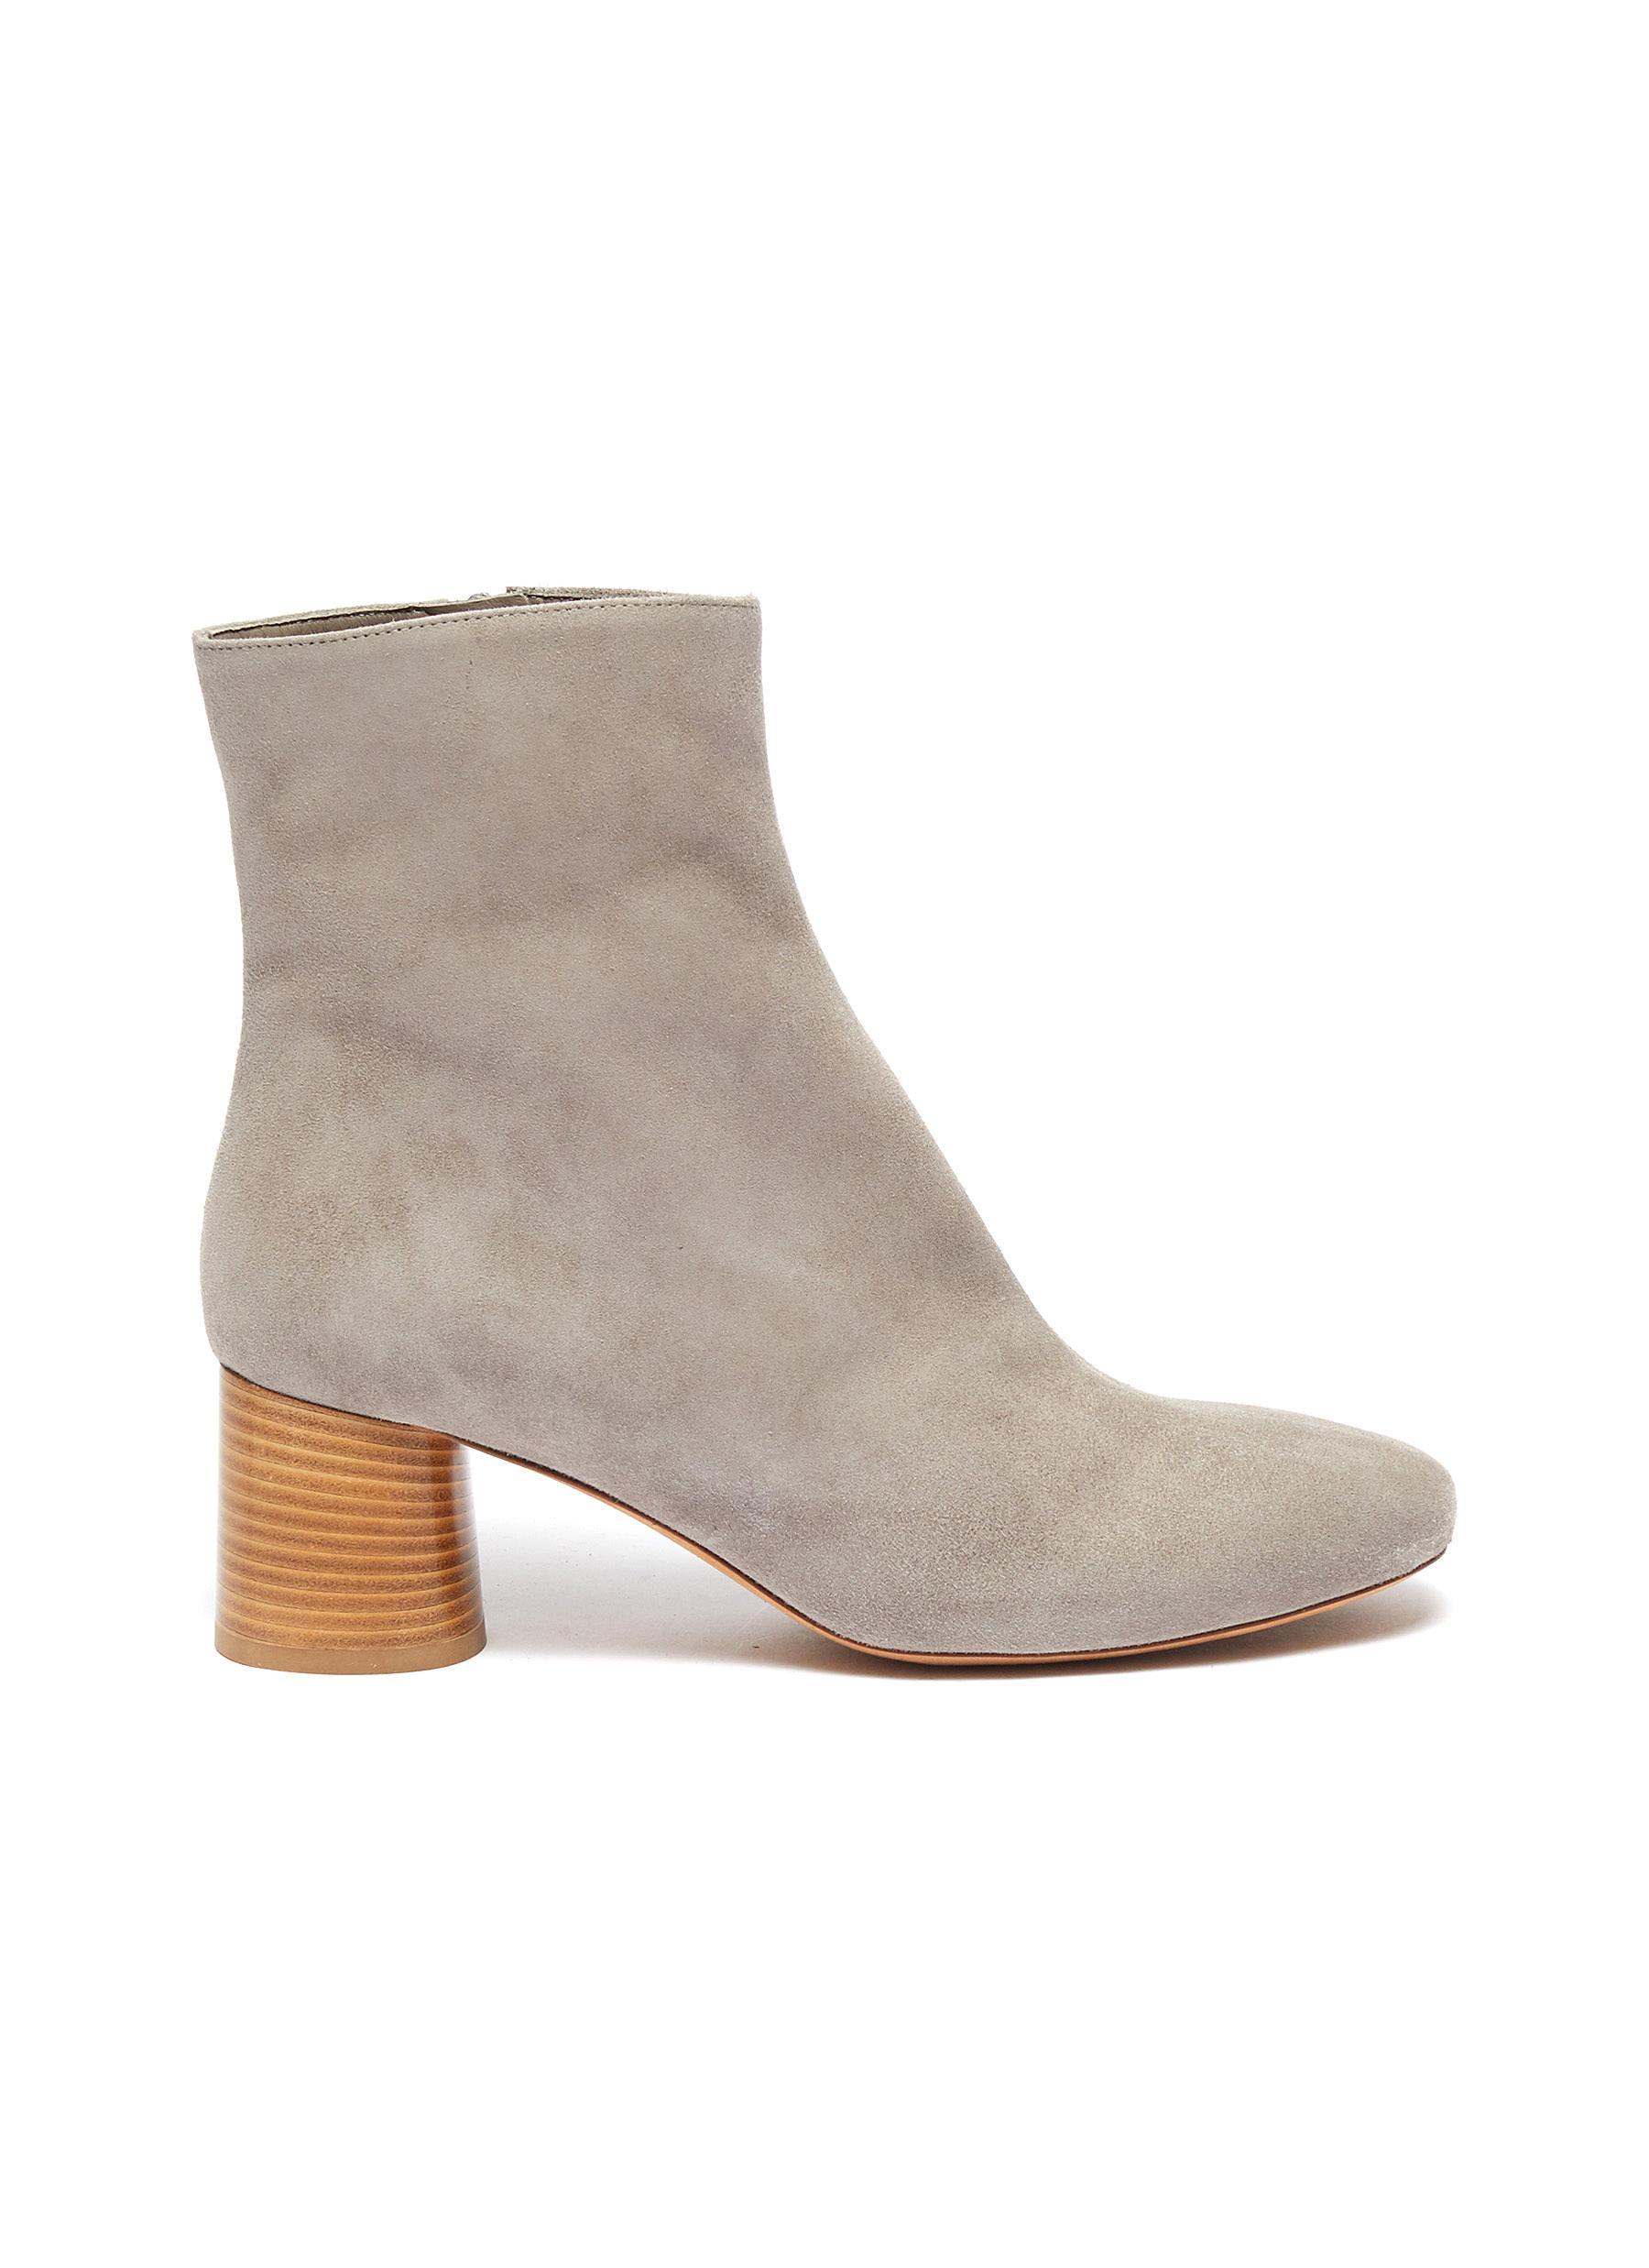 Tasha wooden heel suede ankle boots by Vince